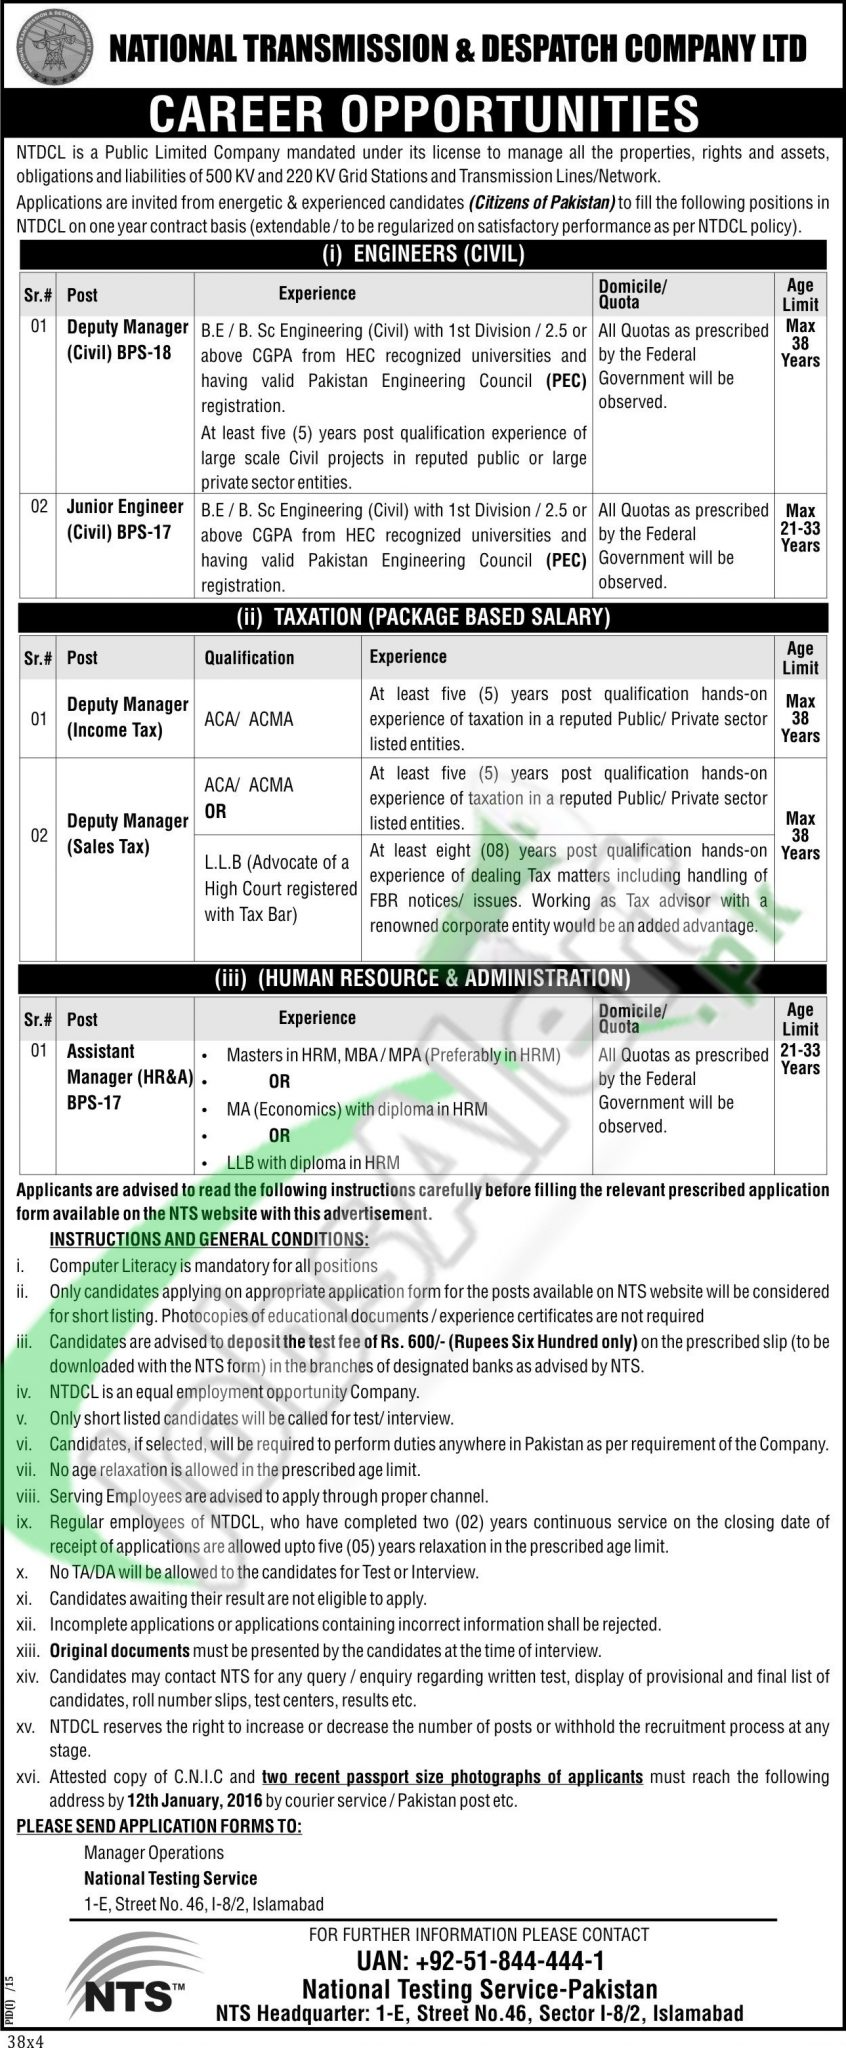 Employment Opportunities in Natinal Transmission and Despatch Company Limited